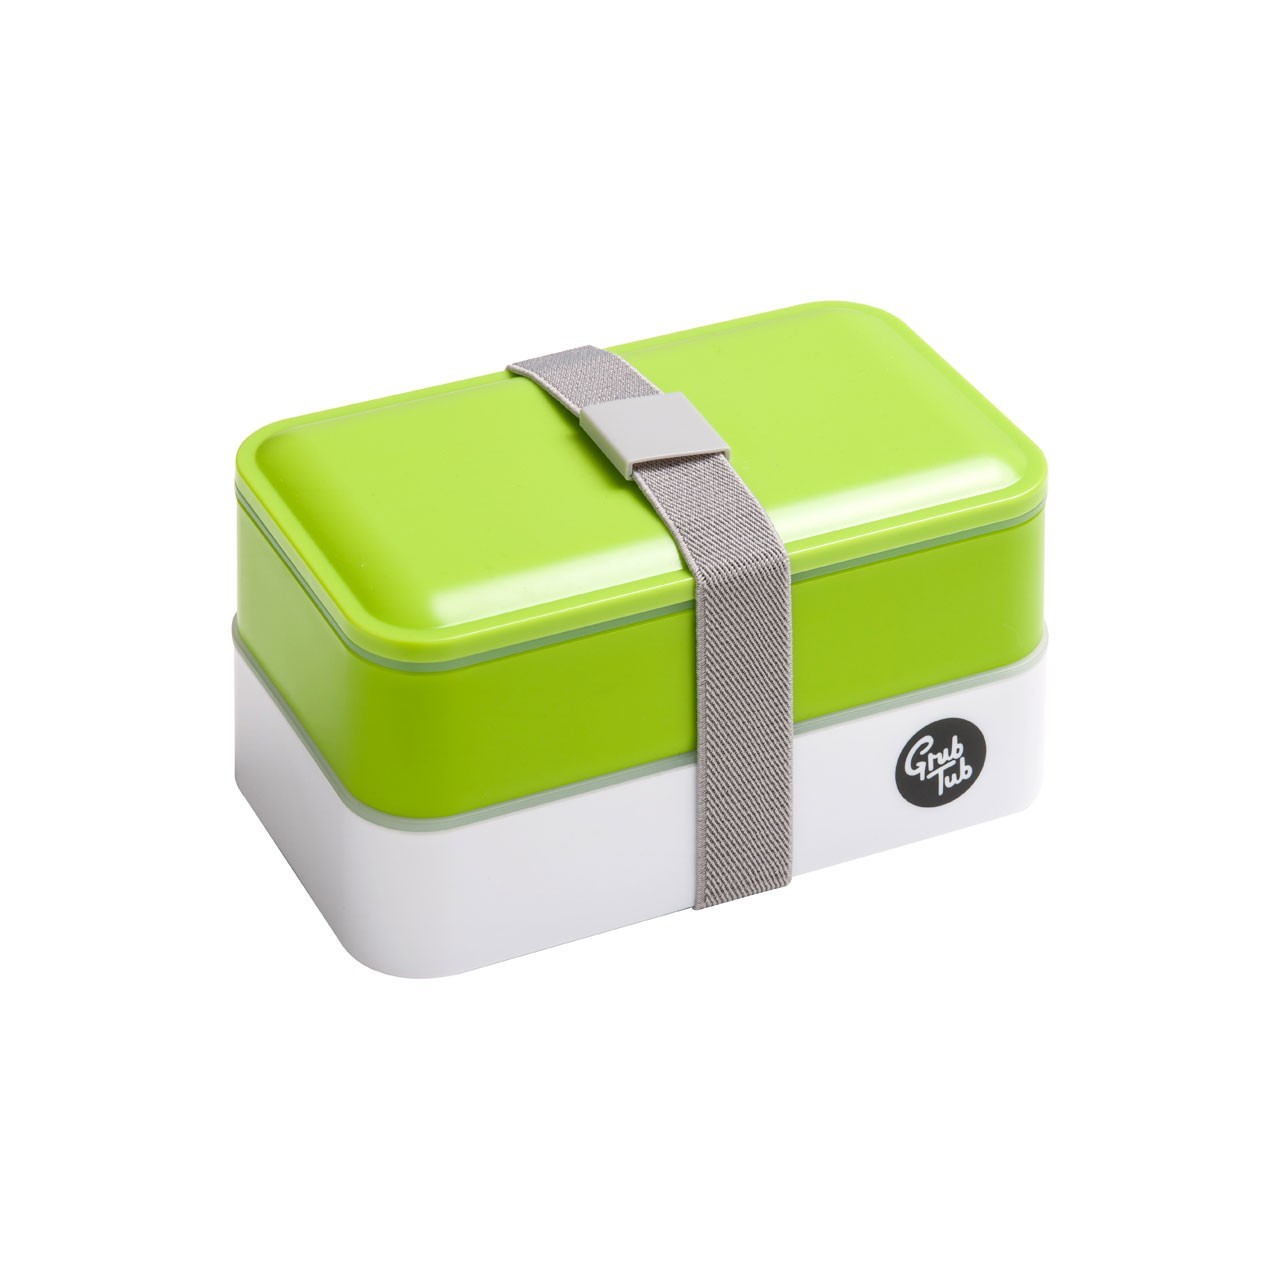 Grub Tub Lunch Box with 2 Containers and Cutlery - Green/White